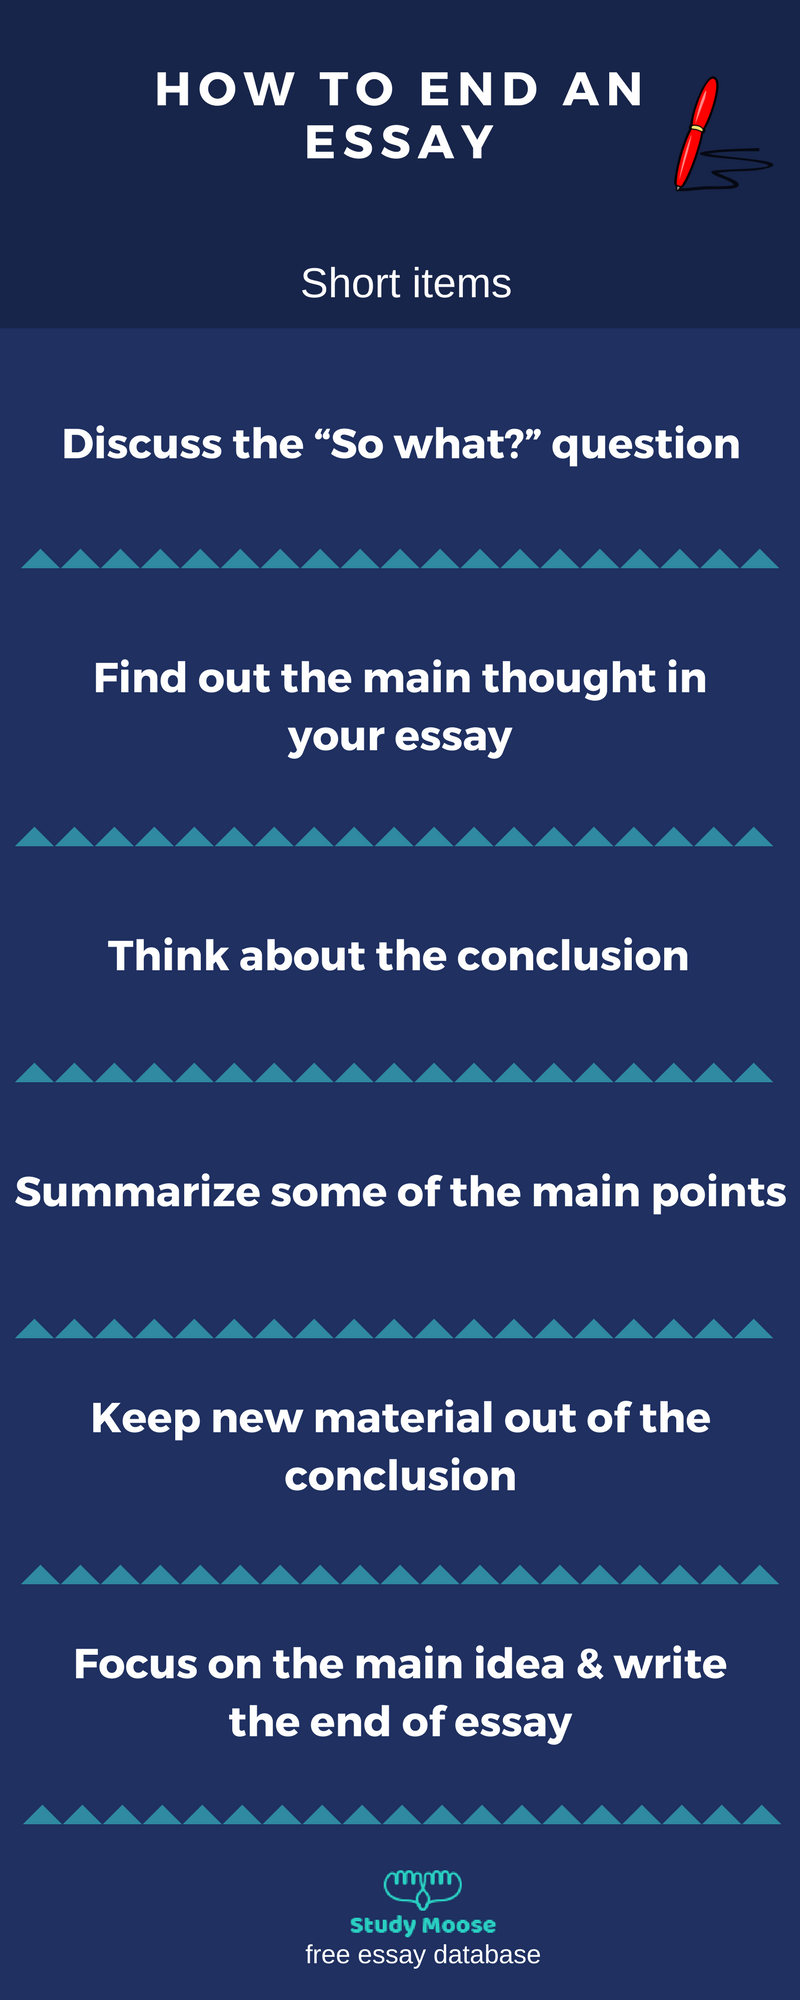 003 How To End An Essay Example Paragraph Outstanding A In Start Conclusion Persuasive Write Expository Full